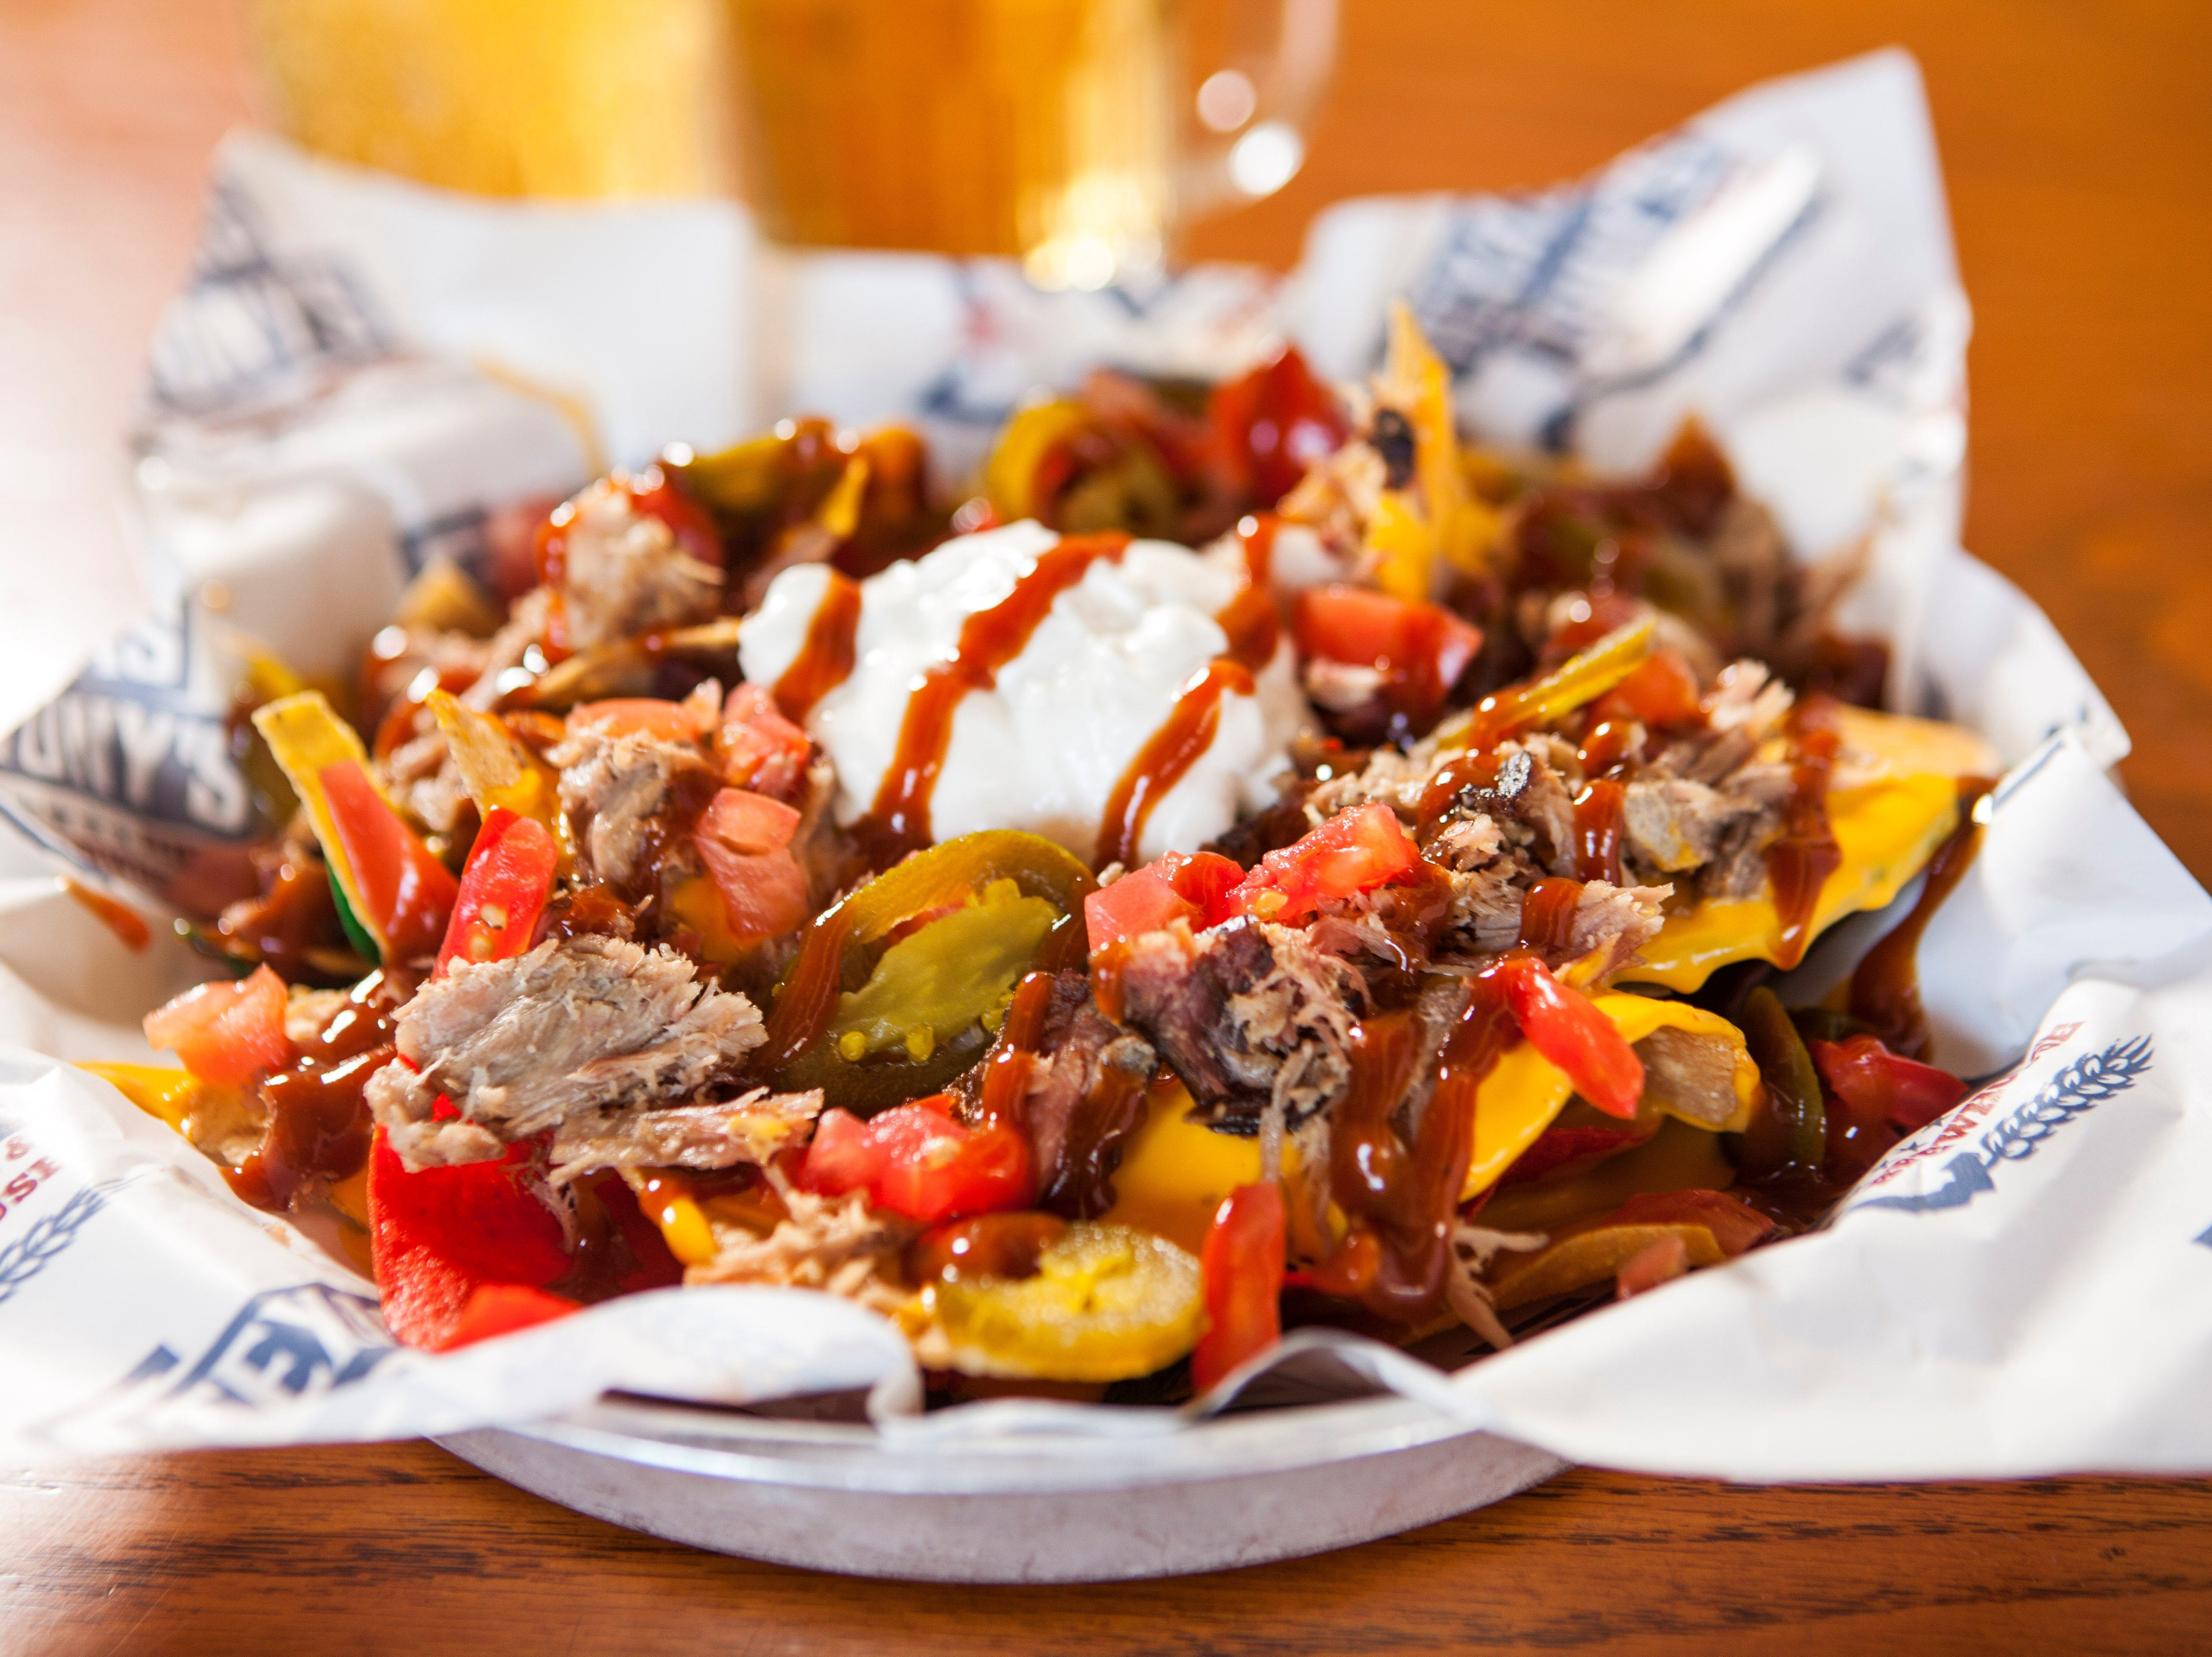 BBQ Nachos from Texas Tony's may be topped with pork, brisket or chicken. The East Naples-based restaurant is opening a second location in Cape Coral.